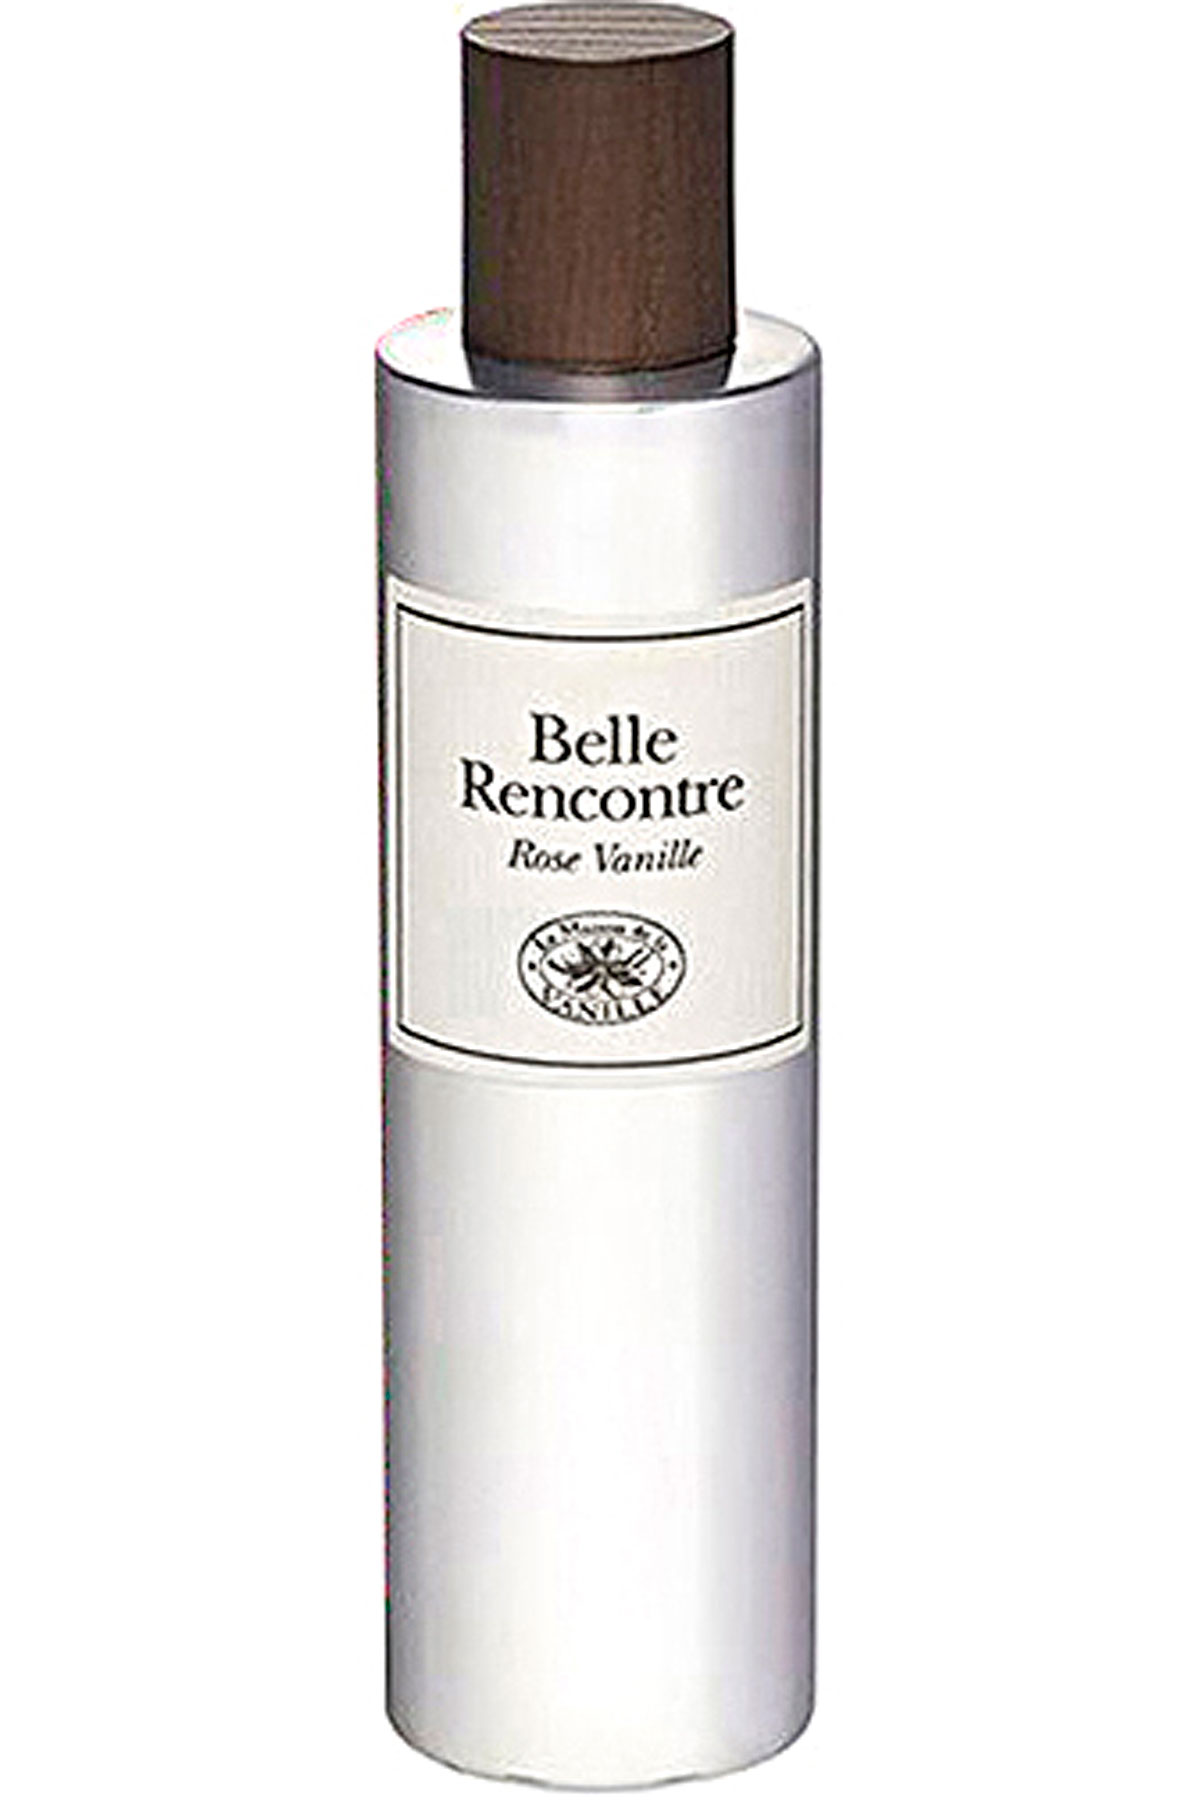 La Maison de la Vanille Fragrances for Women On Sale, Belle Rencontre - Eau De Parfum - 100 Ml, 2019, 100 ml